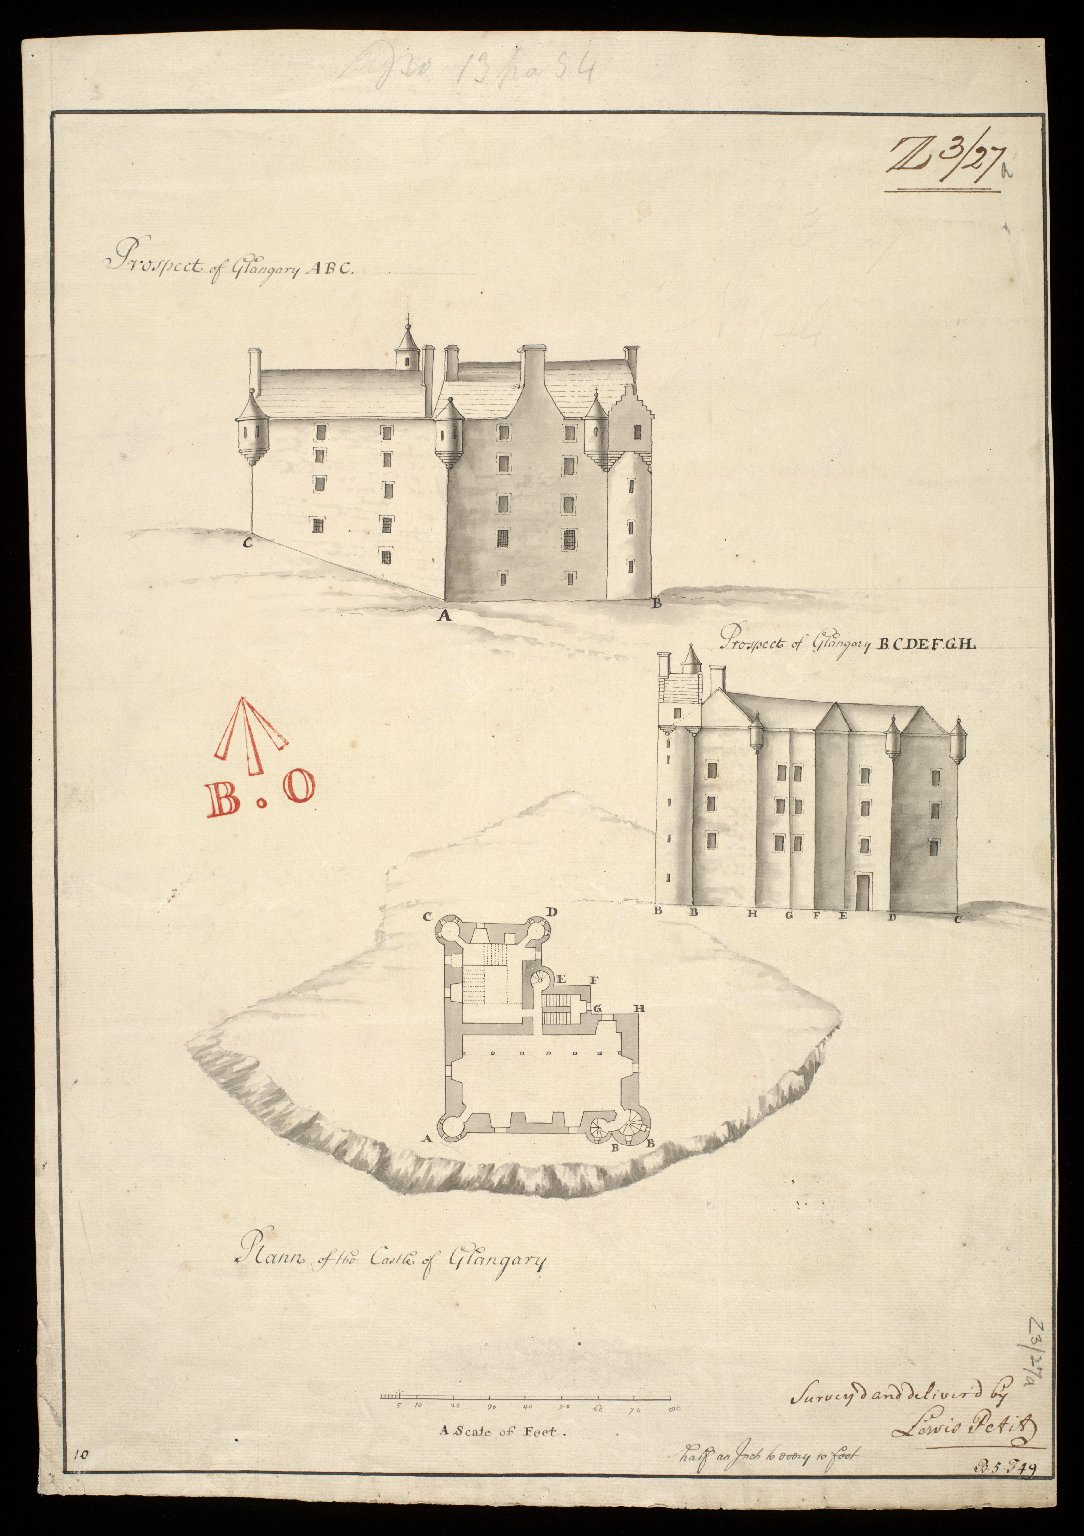 Plann of the Castle of Glangary : prospect of Glangary [i.e. Glengarry] ABC; prospect of Glangary BCDEFGH [1 of 1]